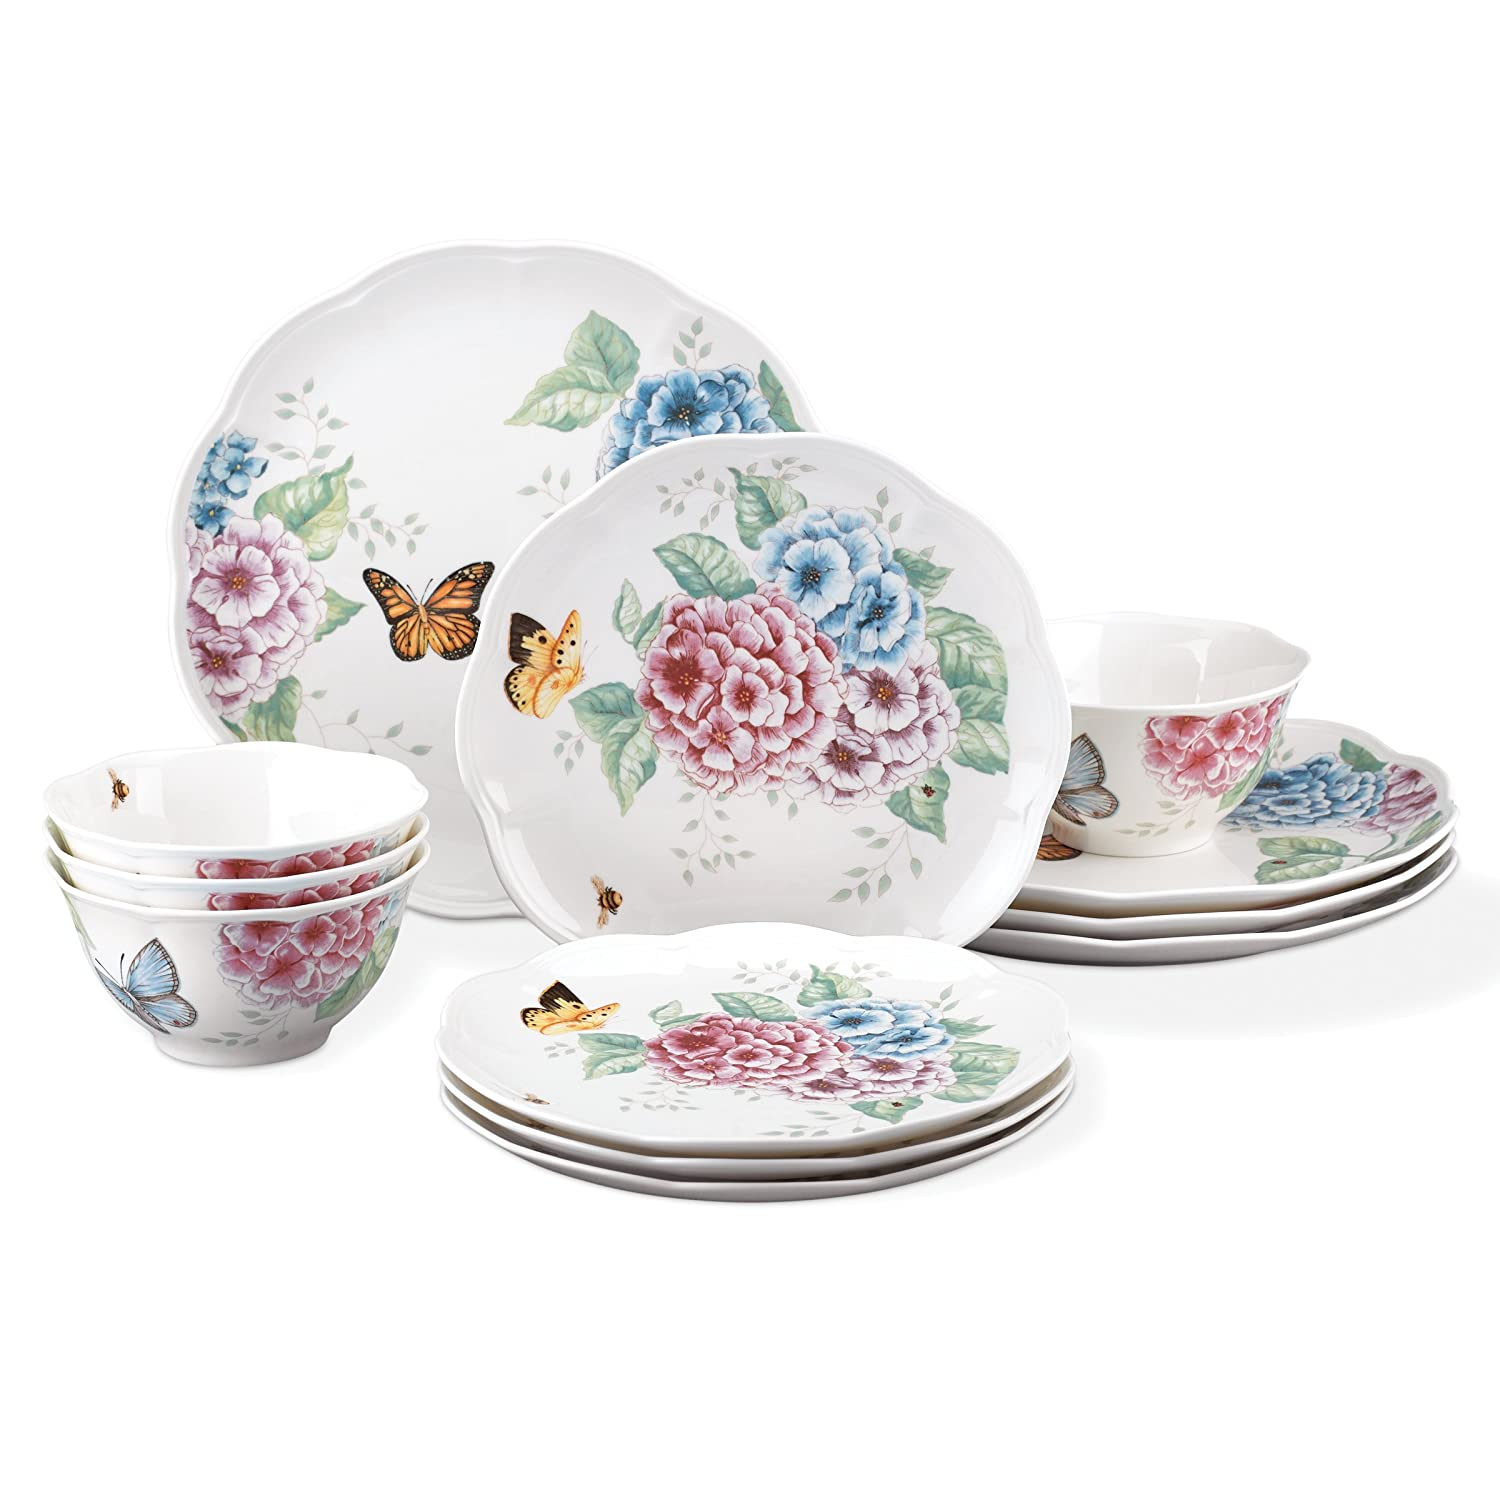 Amazon.com Lenox 12 Piece Butterfly Meadow Hydrangea Set White Kitchen u0026 Dining  sc 1 st  Amazon.com & Amazon.com: Lenox 12 Piece Butterfly Meadow Hydrangea Set White ...